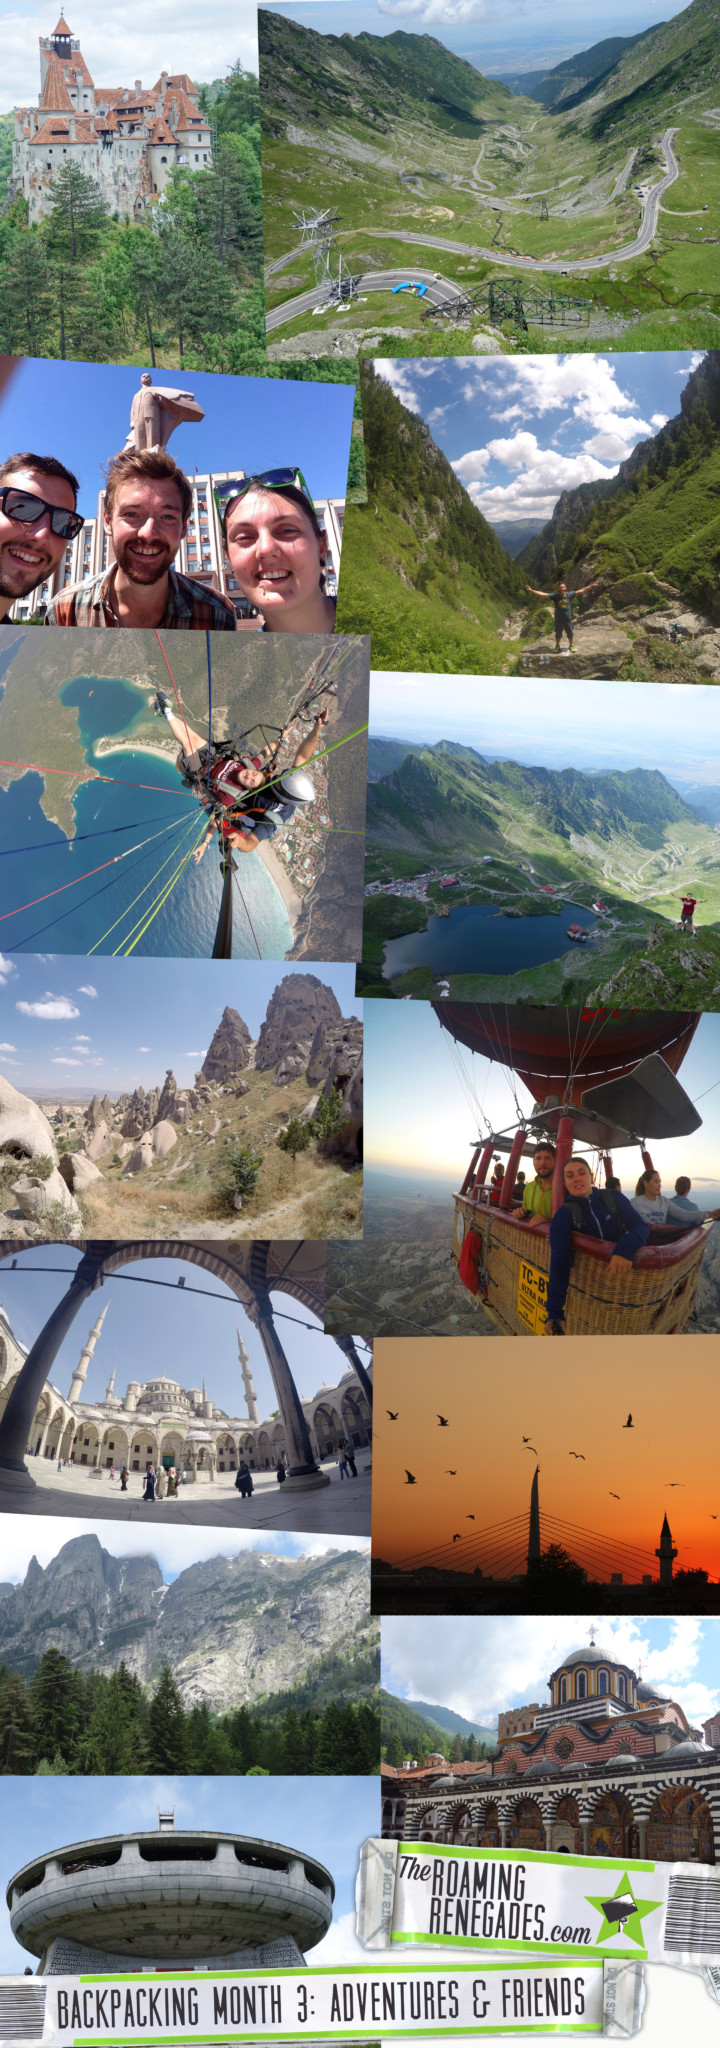 backpacking, monthly round up, bulgaria, rila, turkey, capadoccia, istabul, fethiye, rila, hike, transyvania, romania, moldova, chisinau, explore, adventure, mountains, hisaronu, paraglide, hot air balloon, voyager balloons,